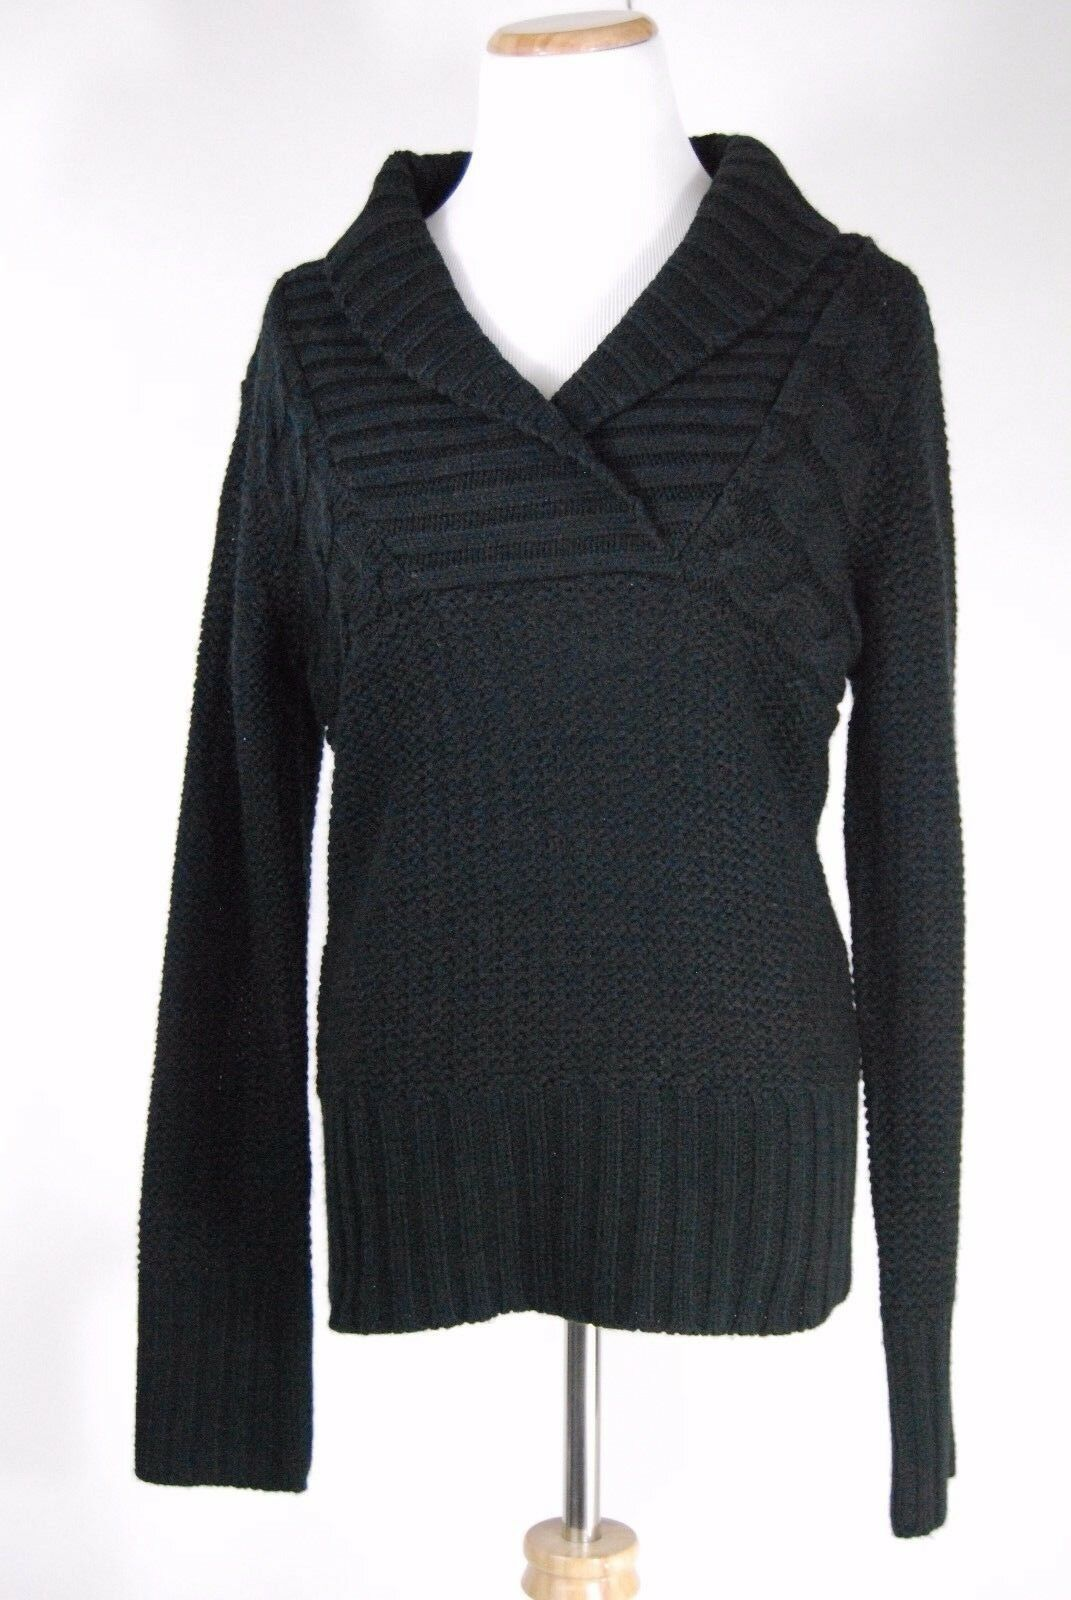 Primary image for Junior's Sweater Project - V-neck Sweater - Black - Size L